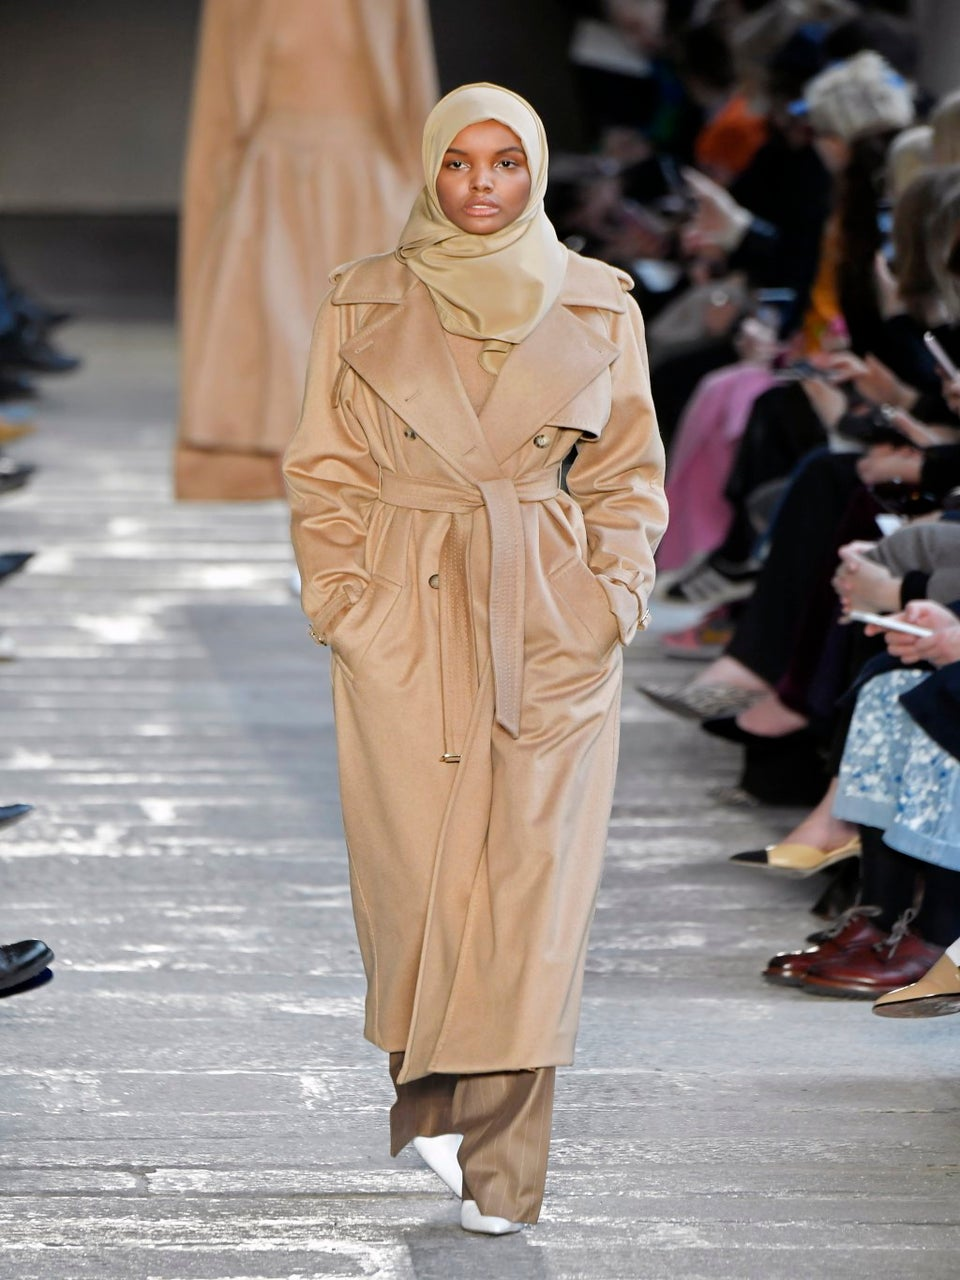 Teen Stunner Halima Aden Talks Making Waves In The Modeling World For Proudly Wearing Her Hijab